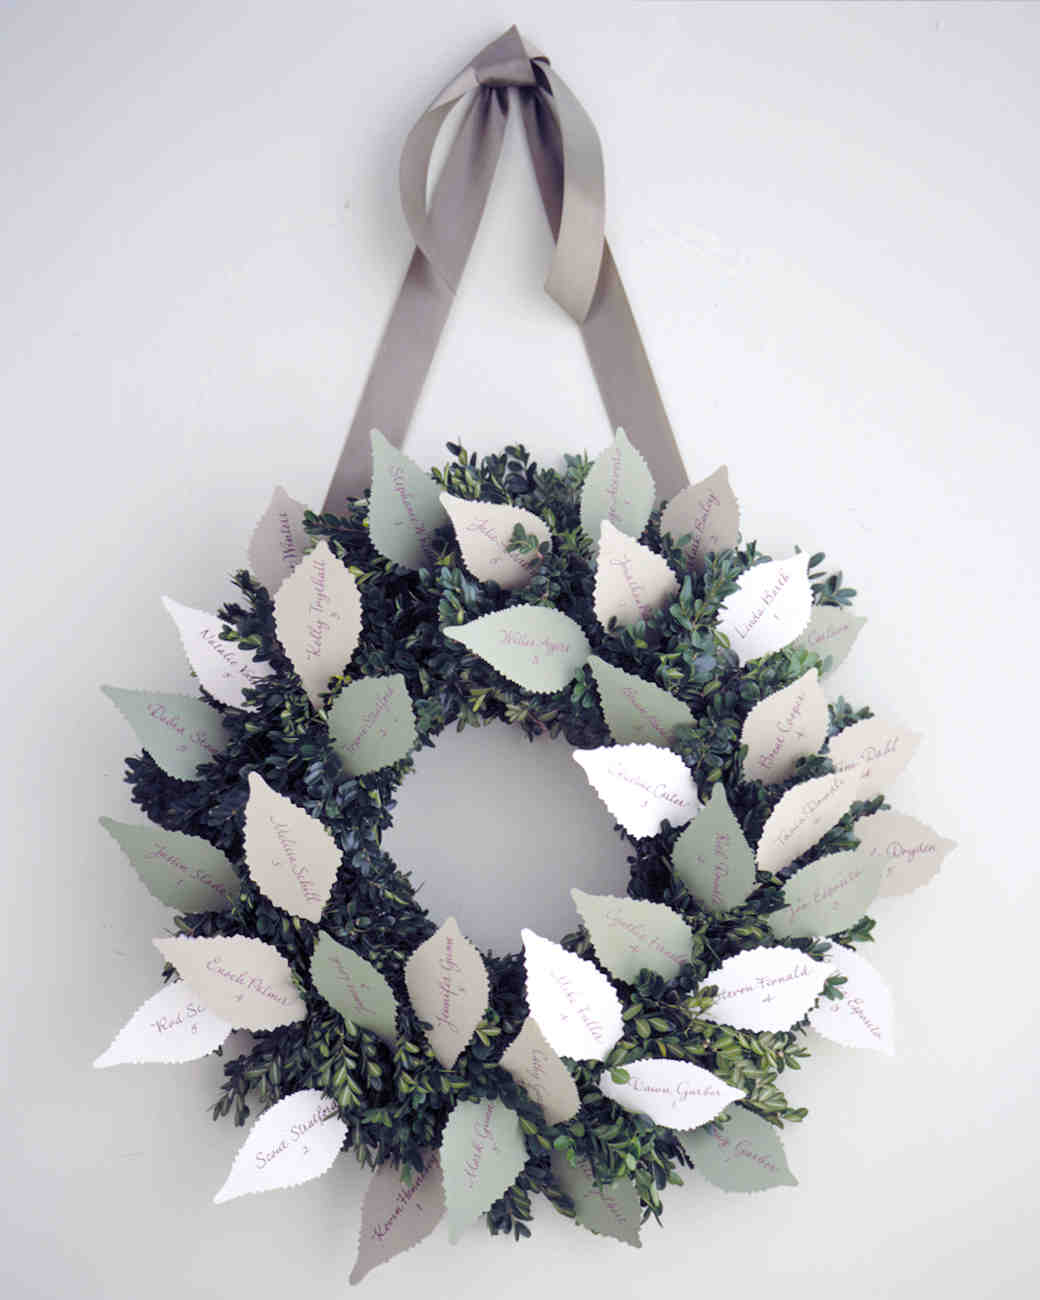 diy-winter-wedding-ideas-escortcard-wreath-1114.jpg